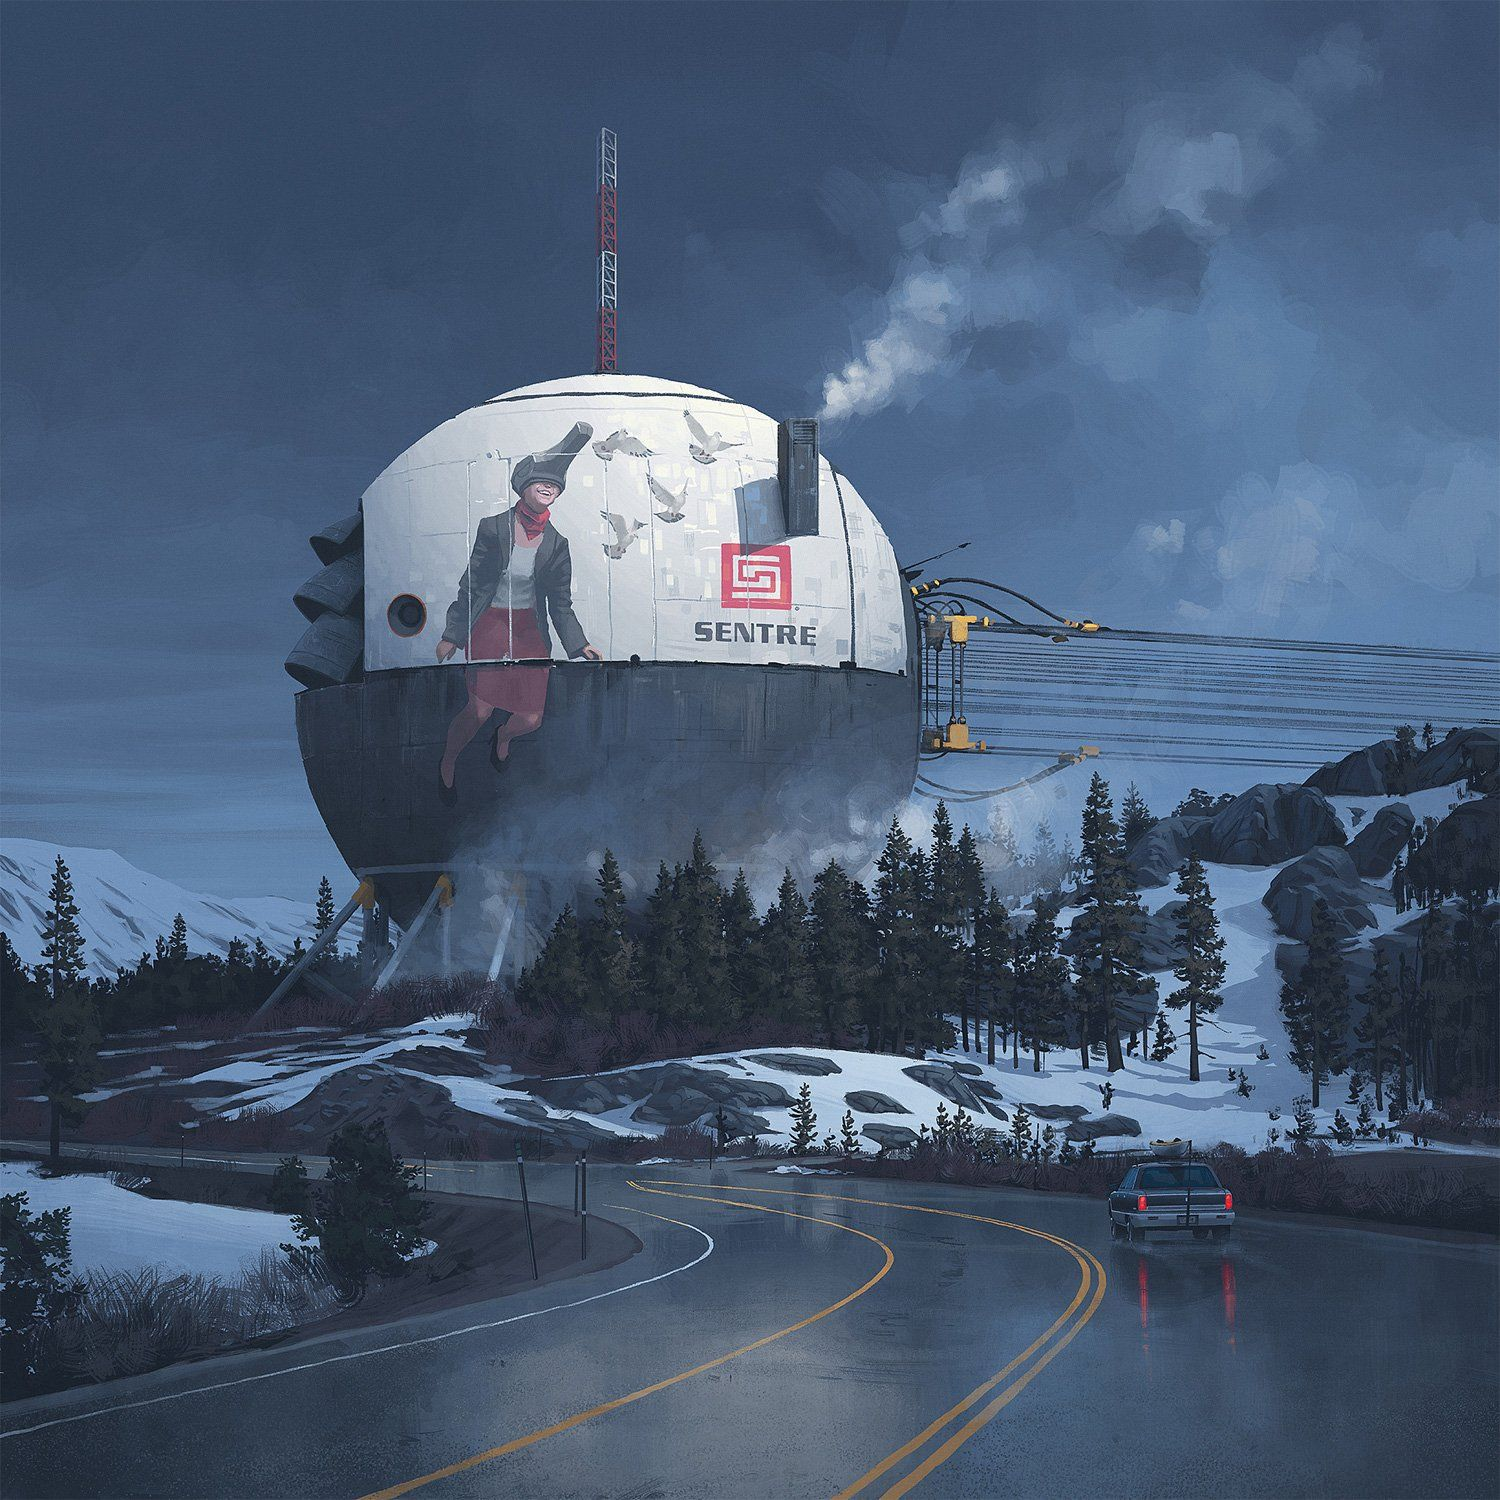 Interview: Simon Stålenhag discusses his fantastic, unsettling sci-fi paintings…